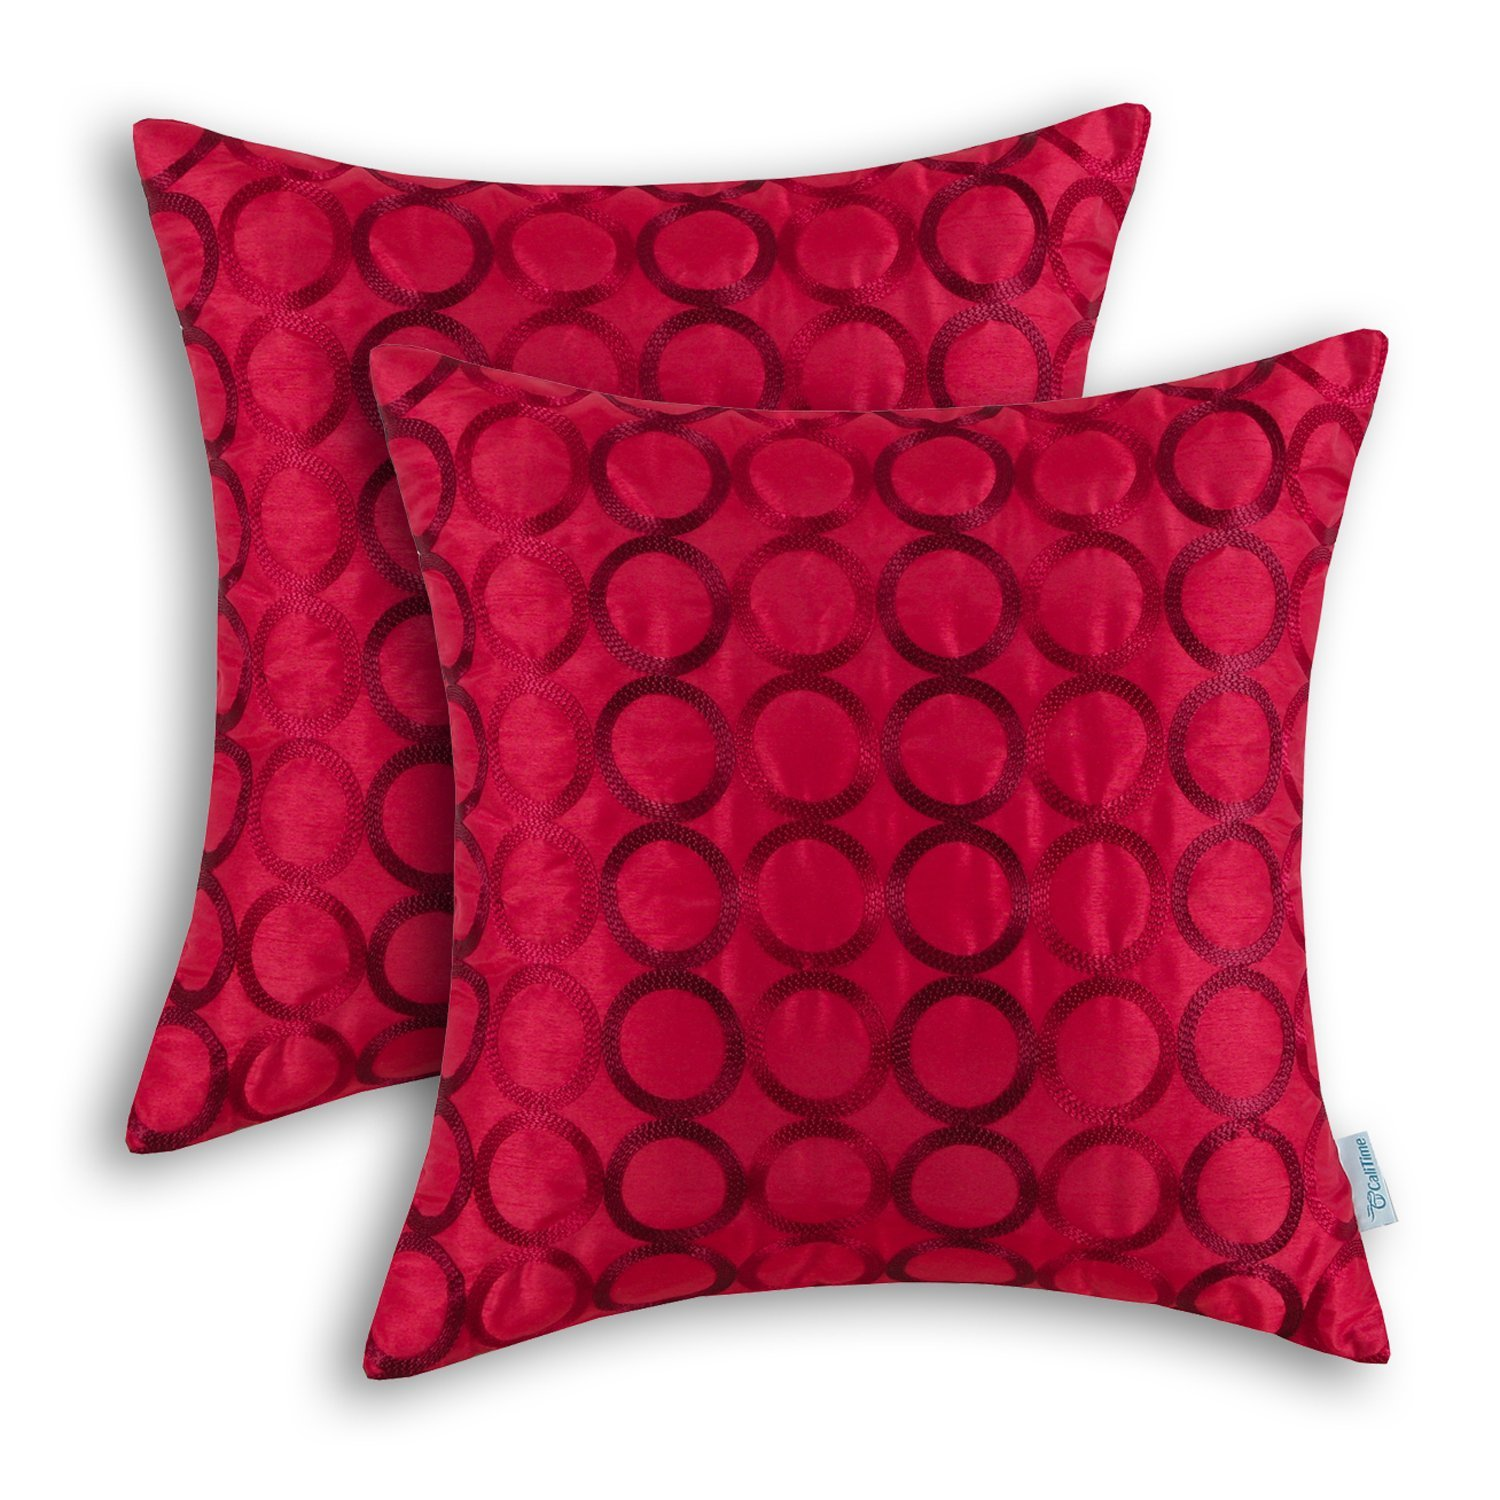 Romantic Bedroom Pillow To Enhance Feng Shui of Your Bedroom - Click Here To Preview